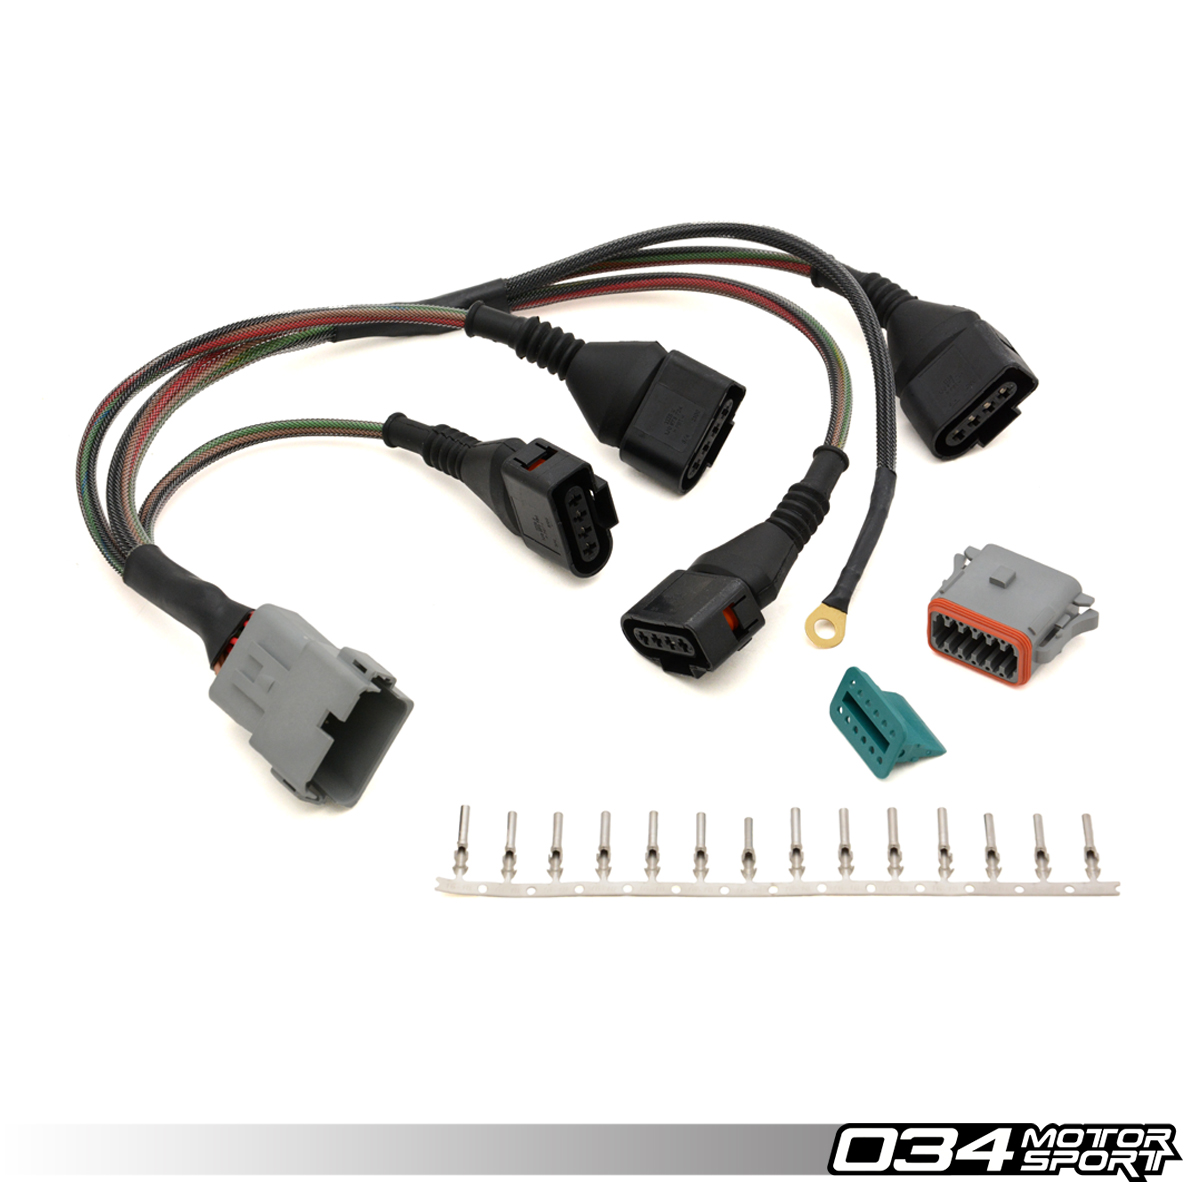 repair update harness audi volkswagen 18t with 4 wire coils 034motorsport 034 701 0004 2 repair update harness, audi volkswagen 1 8t with 4 wire coils 2003 audi a4 engine wiring harness at n-0.co